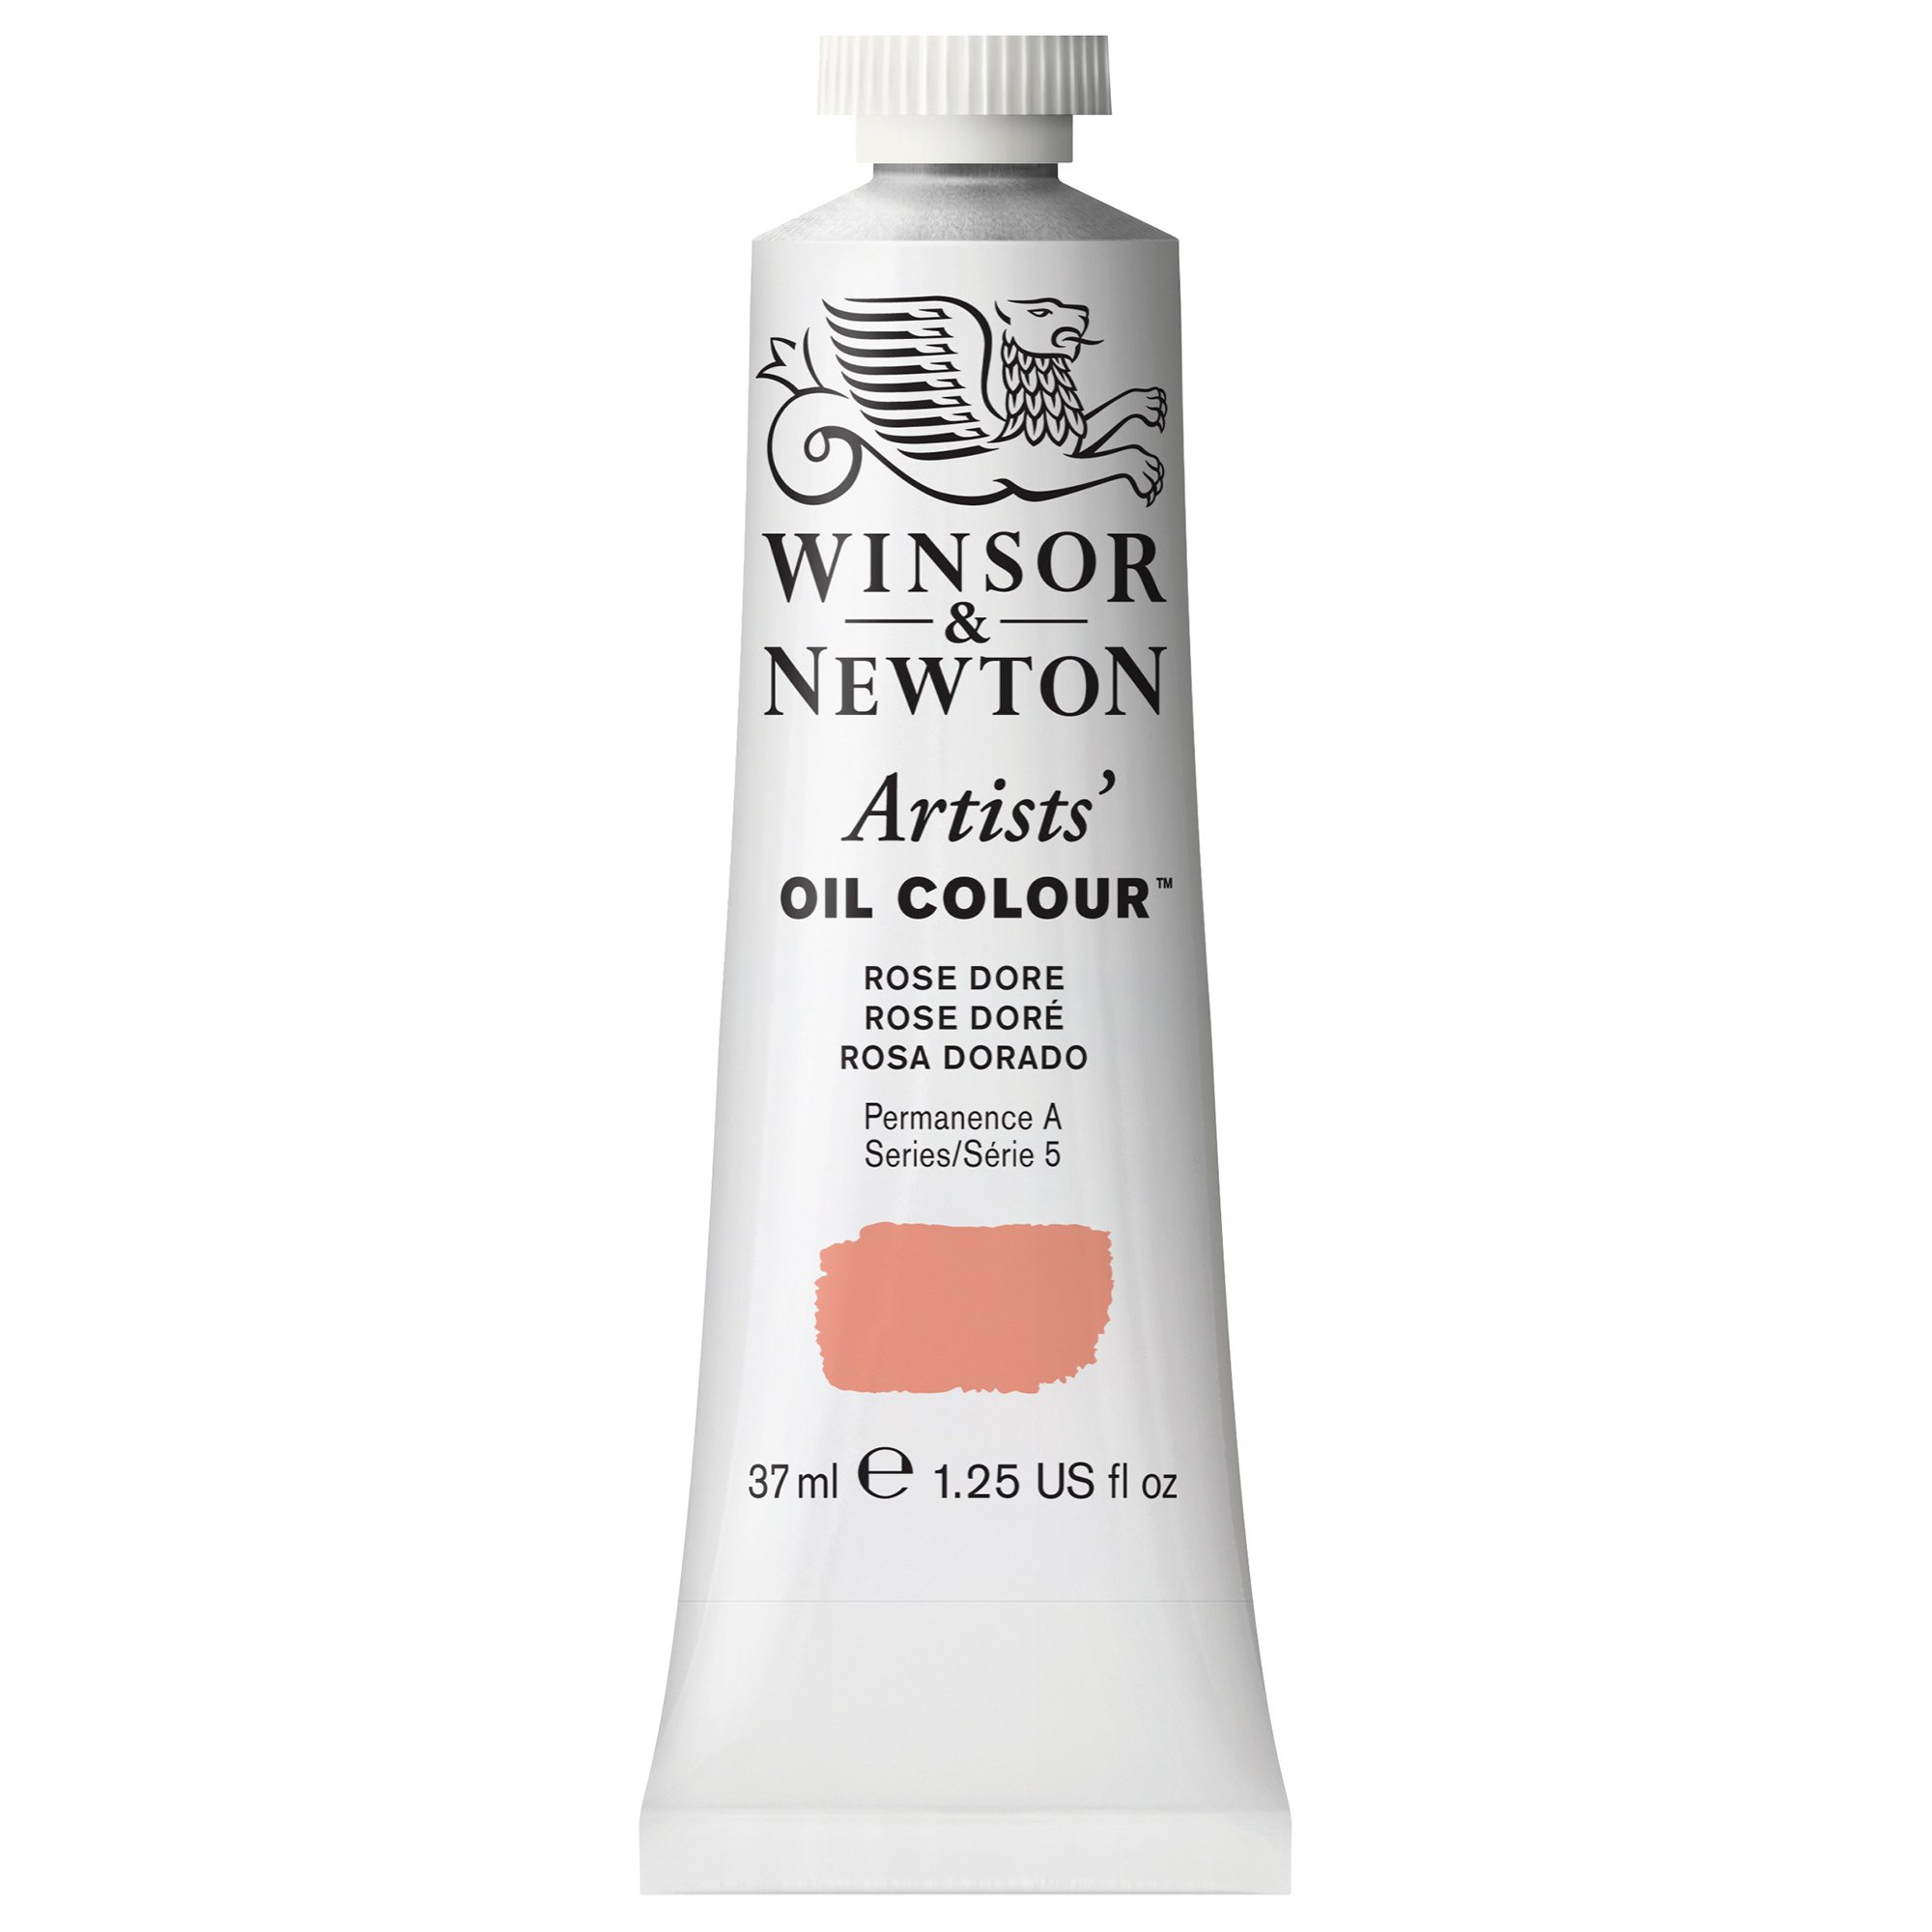 Winsor & Newton Artists' Oil Colour Paint, 37ml Tube, Rose Dore by Winsor & Newton